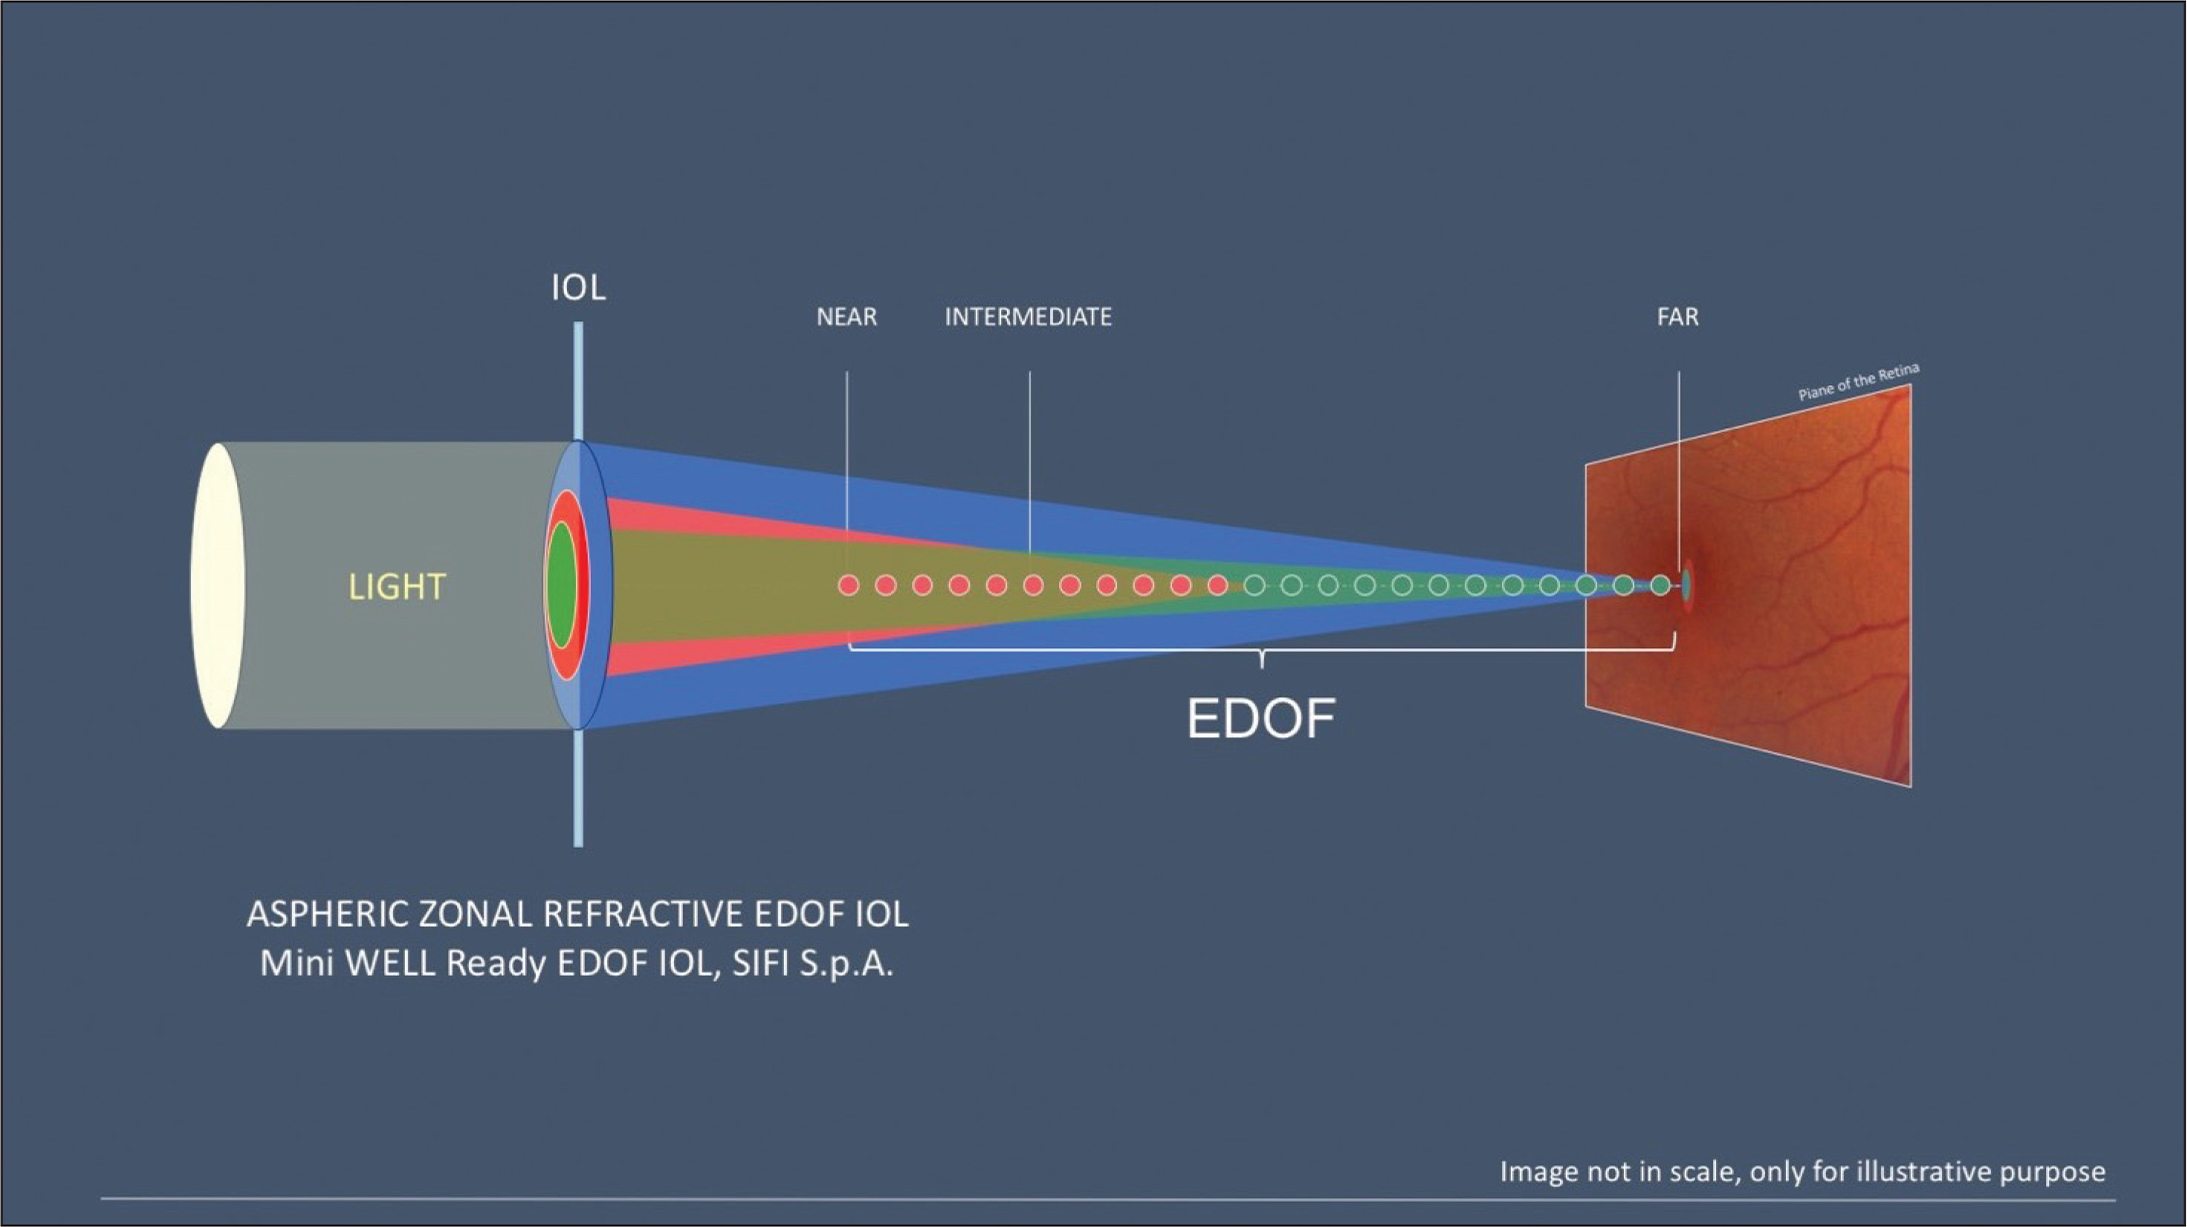 Schematic illustration of the Mini Well Ready extended depth of focus (EDOF) intraocular lens (IOL). Image provided courtesy of Dr. Zuppardo.